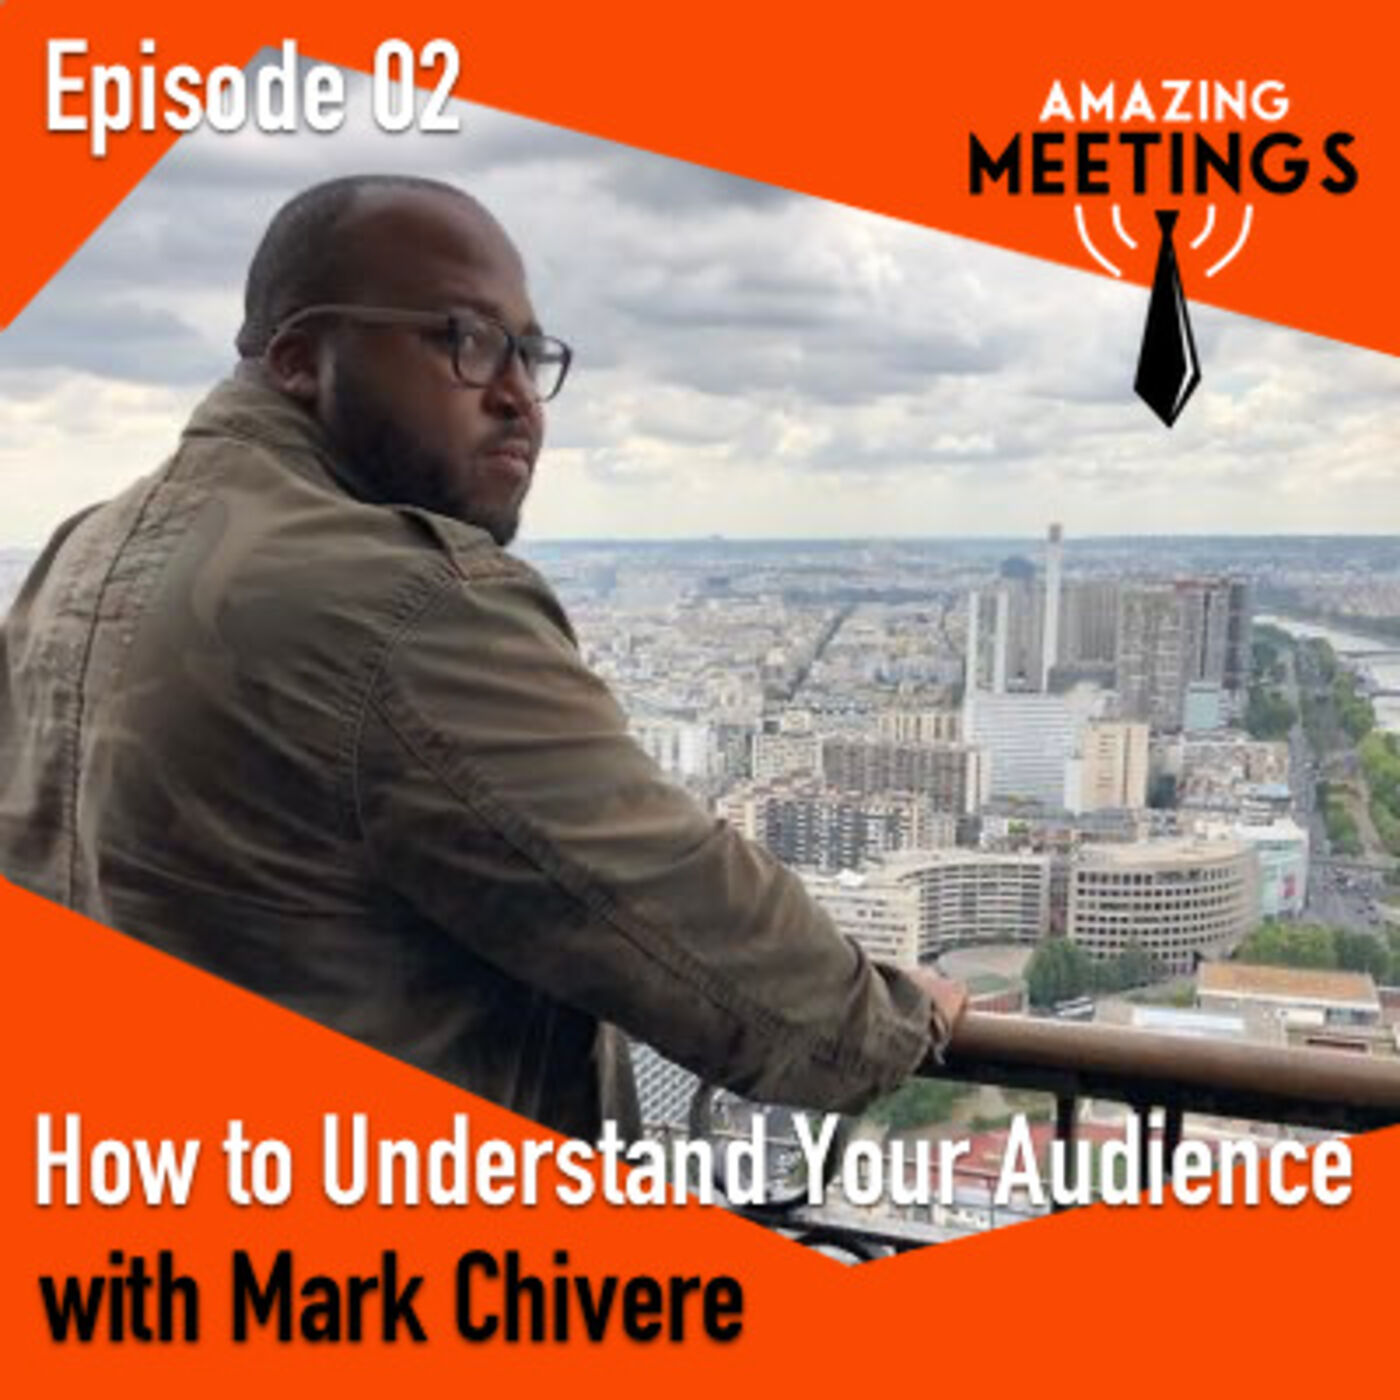 How to read your audience with Mark Chivere